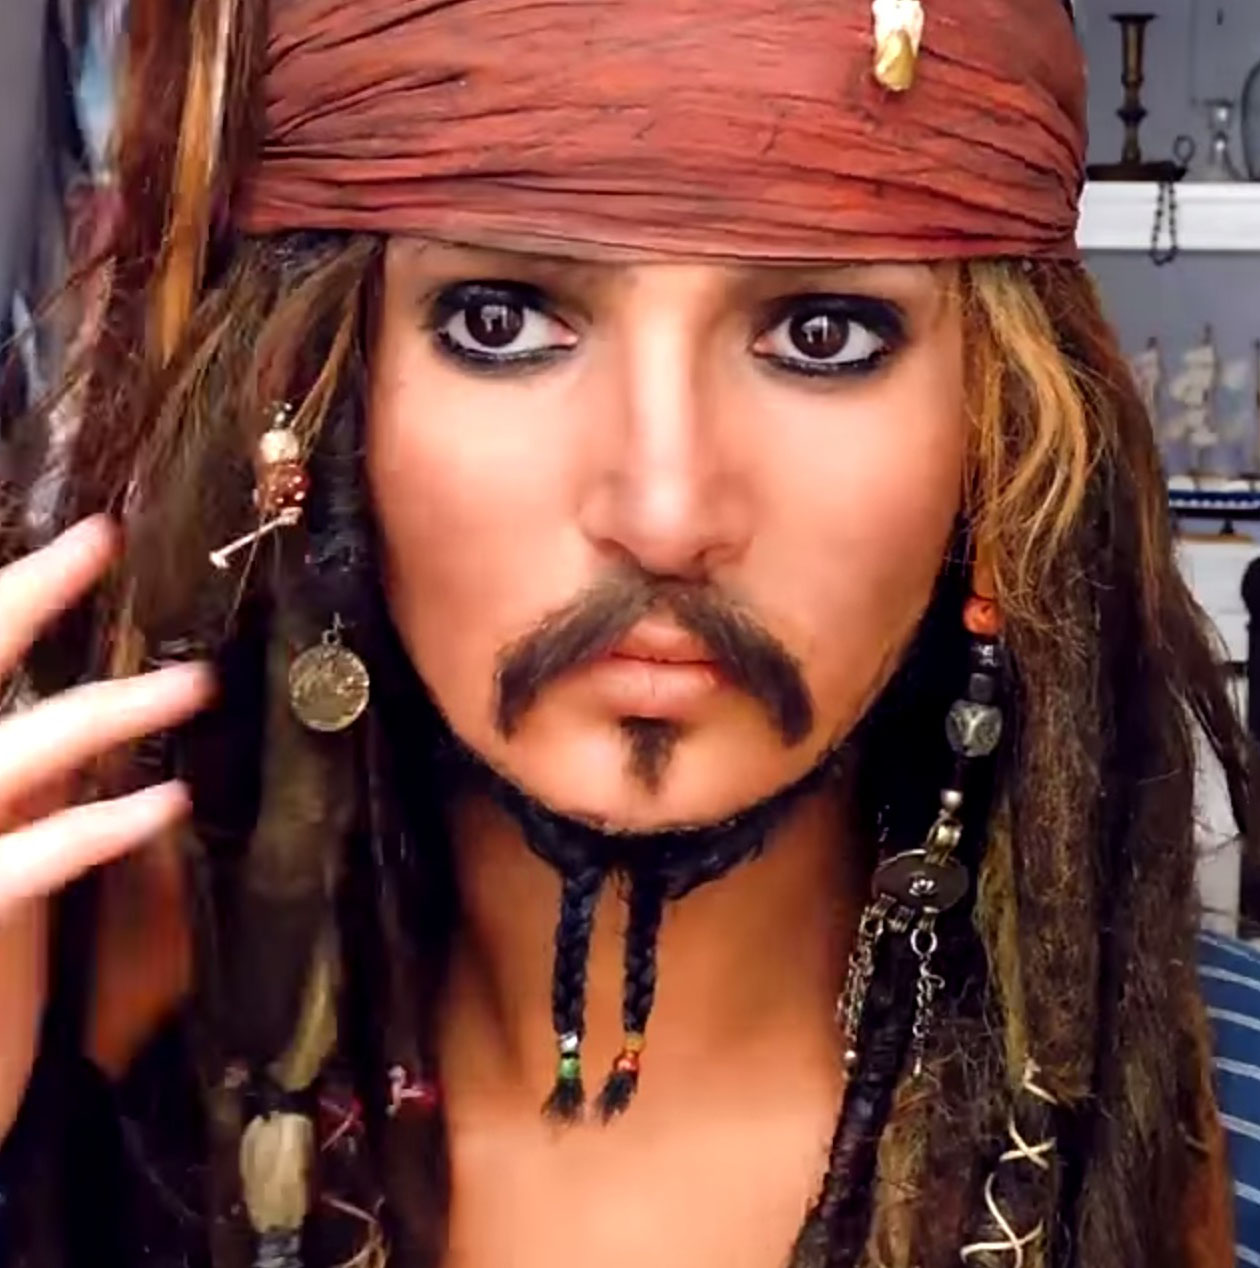 35 easy halloween makeup ideas tutorials 2017 cool halloween costumes with makeup - Jack Sparrow Halloween Costumes